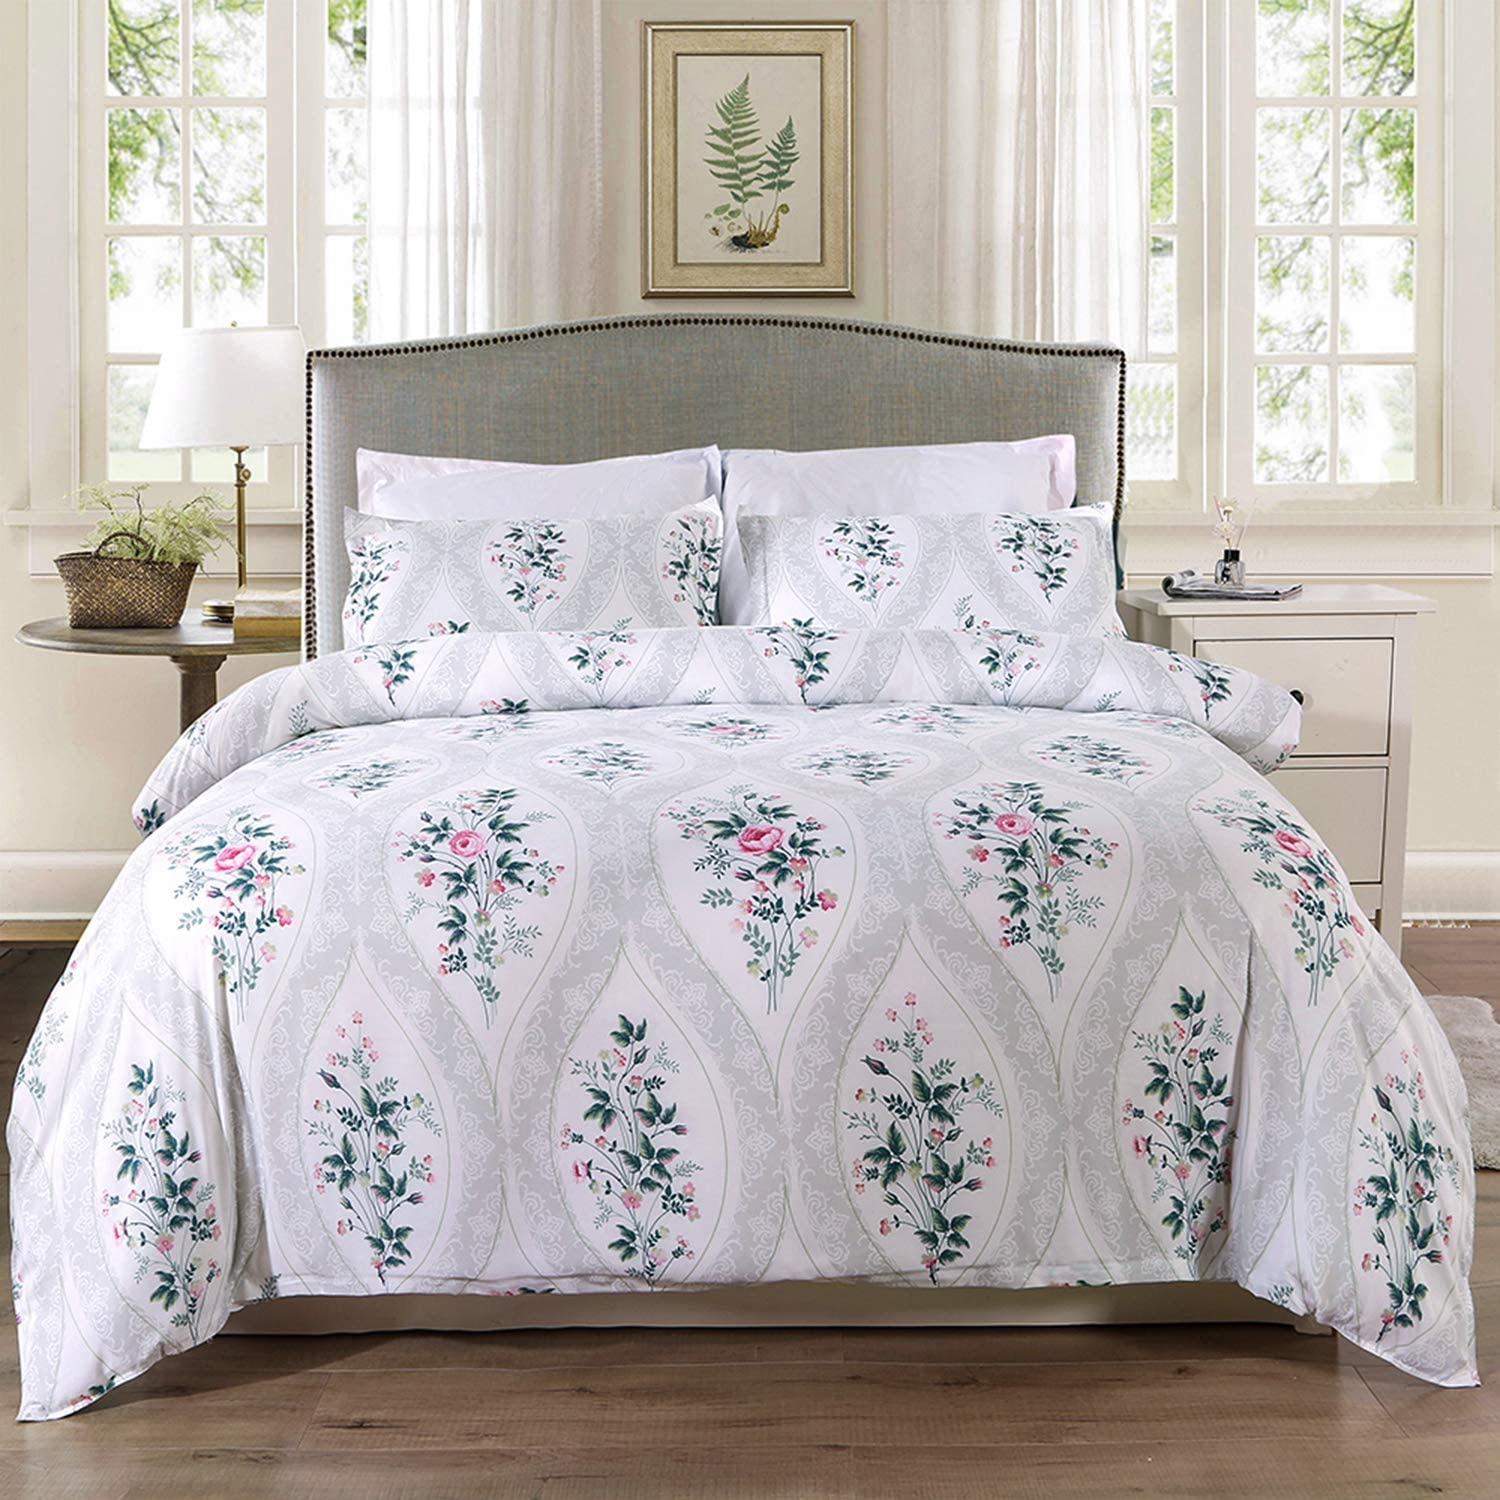 Homaxy 3-Piece (1 Duvet Cover + 2 Pillow Sham) Duvet Cover Set, Ultra Soft Hypoallergenic Microfiber Rose Pattern Printed Bedding Set with Zipper Closure, Corner Ties, King 104x90 inches